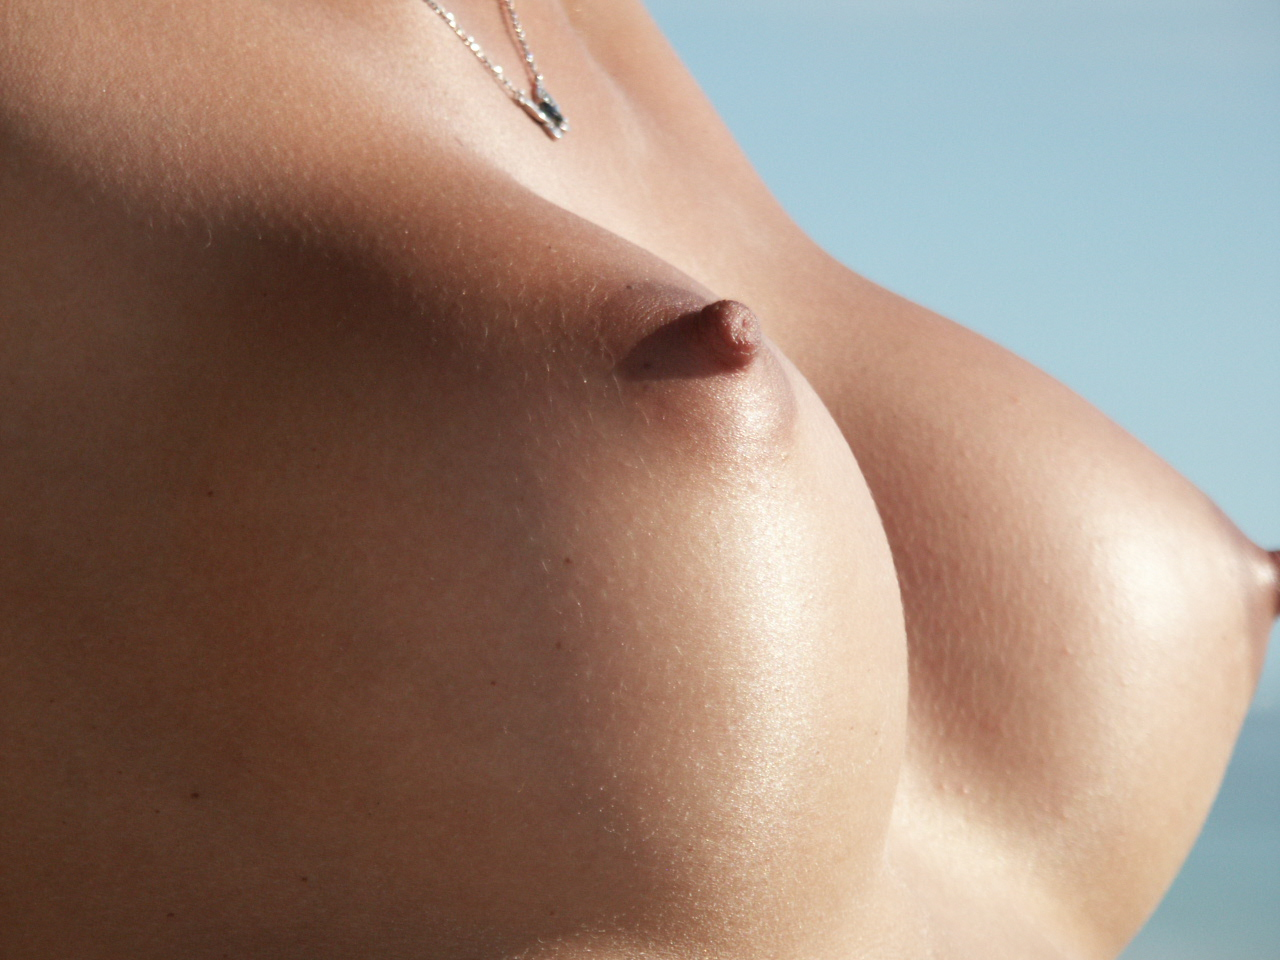 Nipple Closeup - Big Tits, Erect Nipples, Hard Nipple, Large Breasts, Nipples , Nipple Closeup, Outdoor Nipple Closeup, Big Tits, Hard Nipples, Excellent Breast Closeup, Very Detailed Tit Shot, Erected Nipples, Sexy Tits